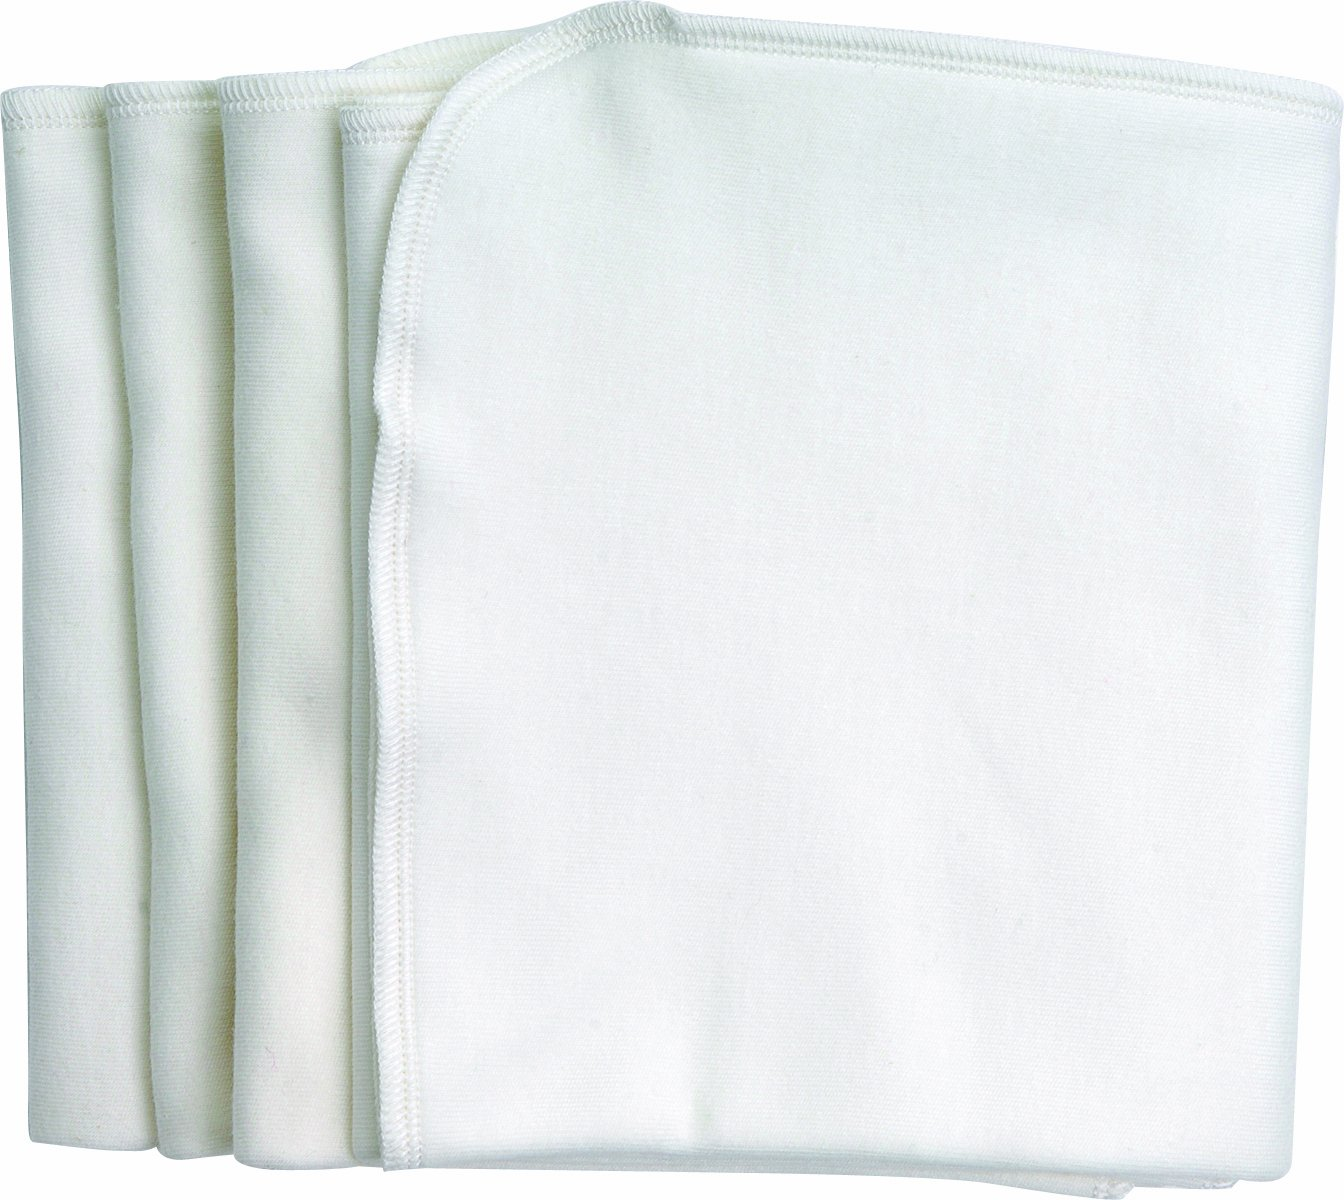 Under the Nile Burp Cloths, White, 4-Count BC-285